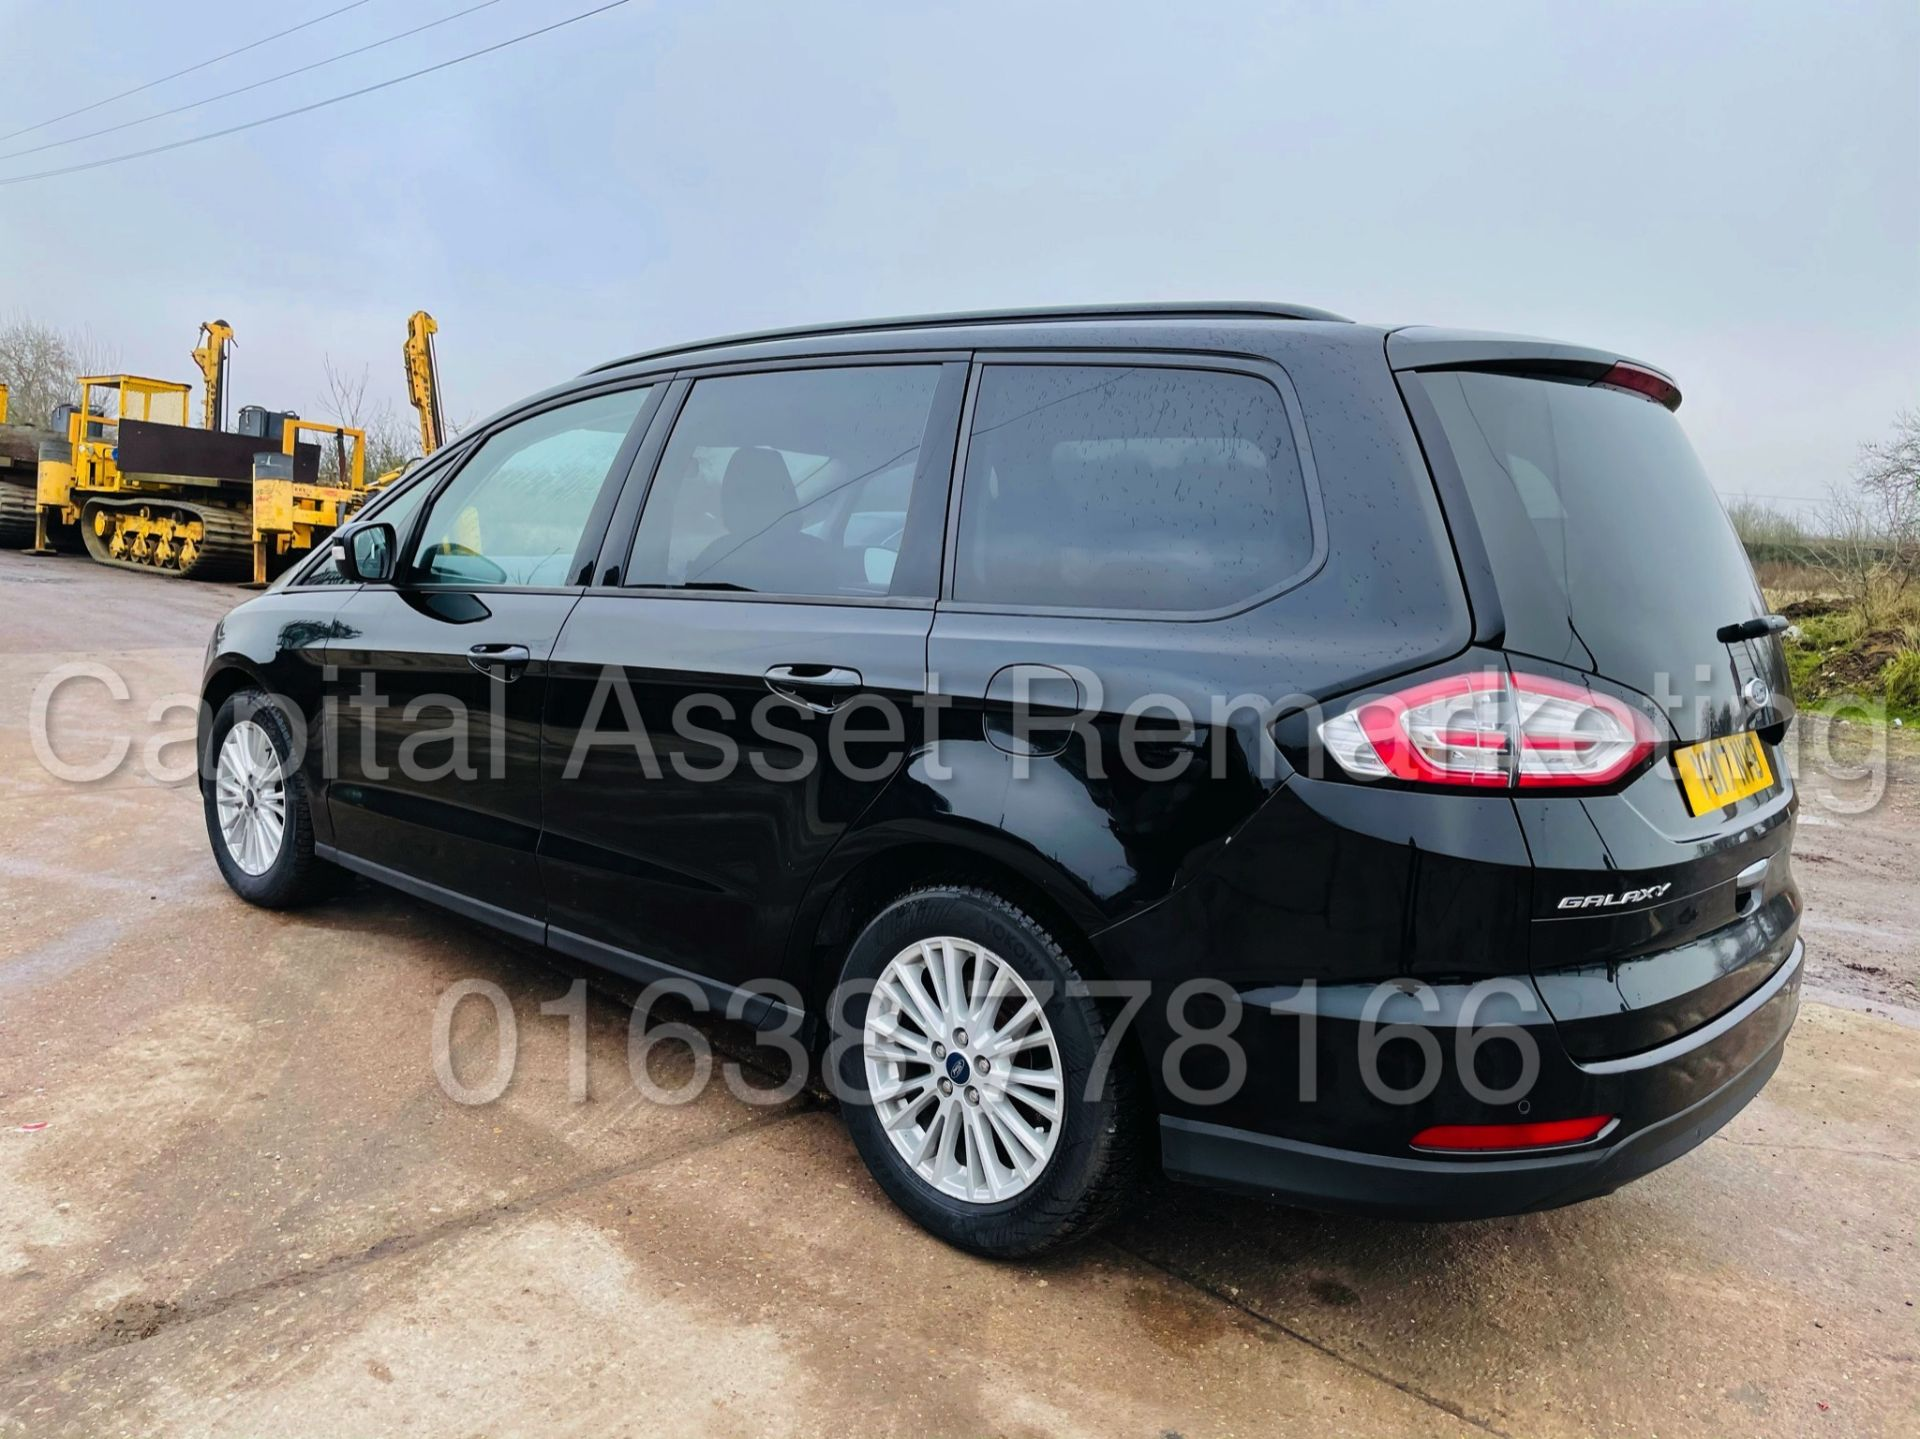 (On Sale) FORD GALAXY *ZETEC EDITION* 7 SEATER MPV (2017 - EURO 6) '2.0 TDCI - AUTO' (1 OWNER) - Image 9 of 48